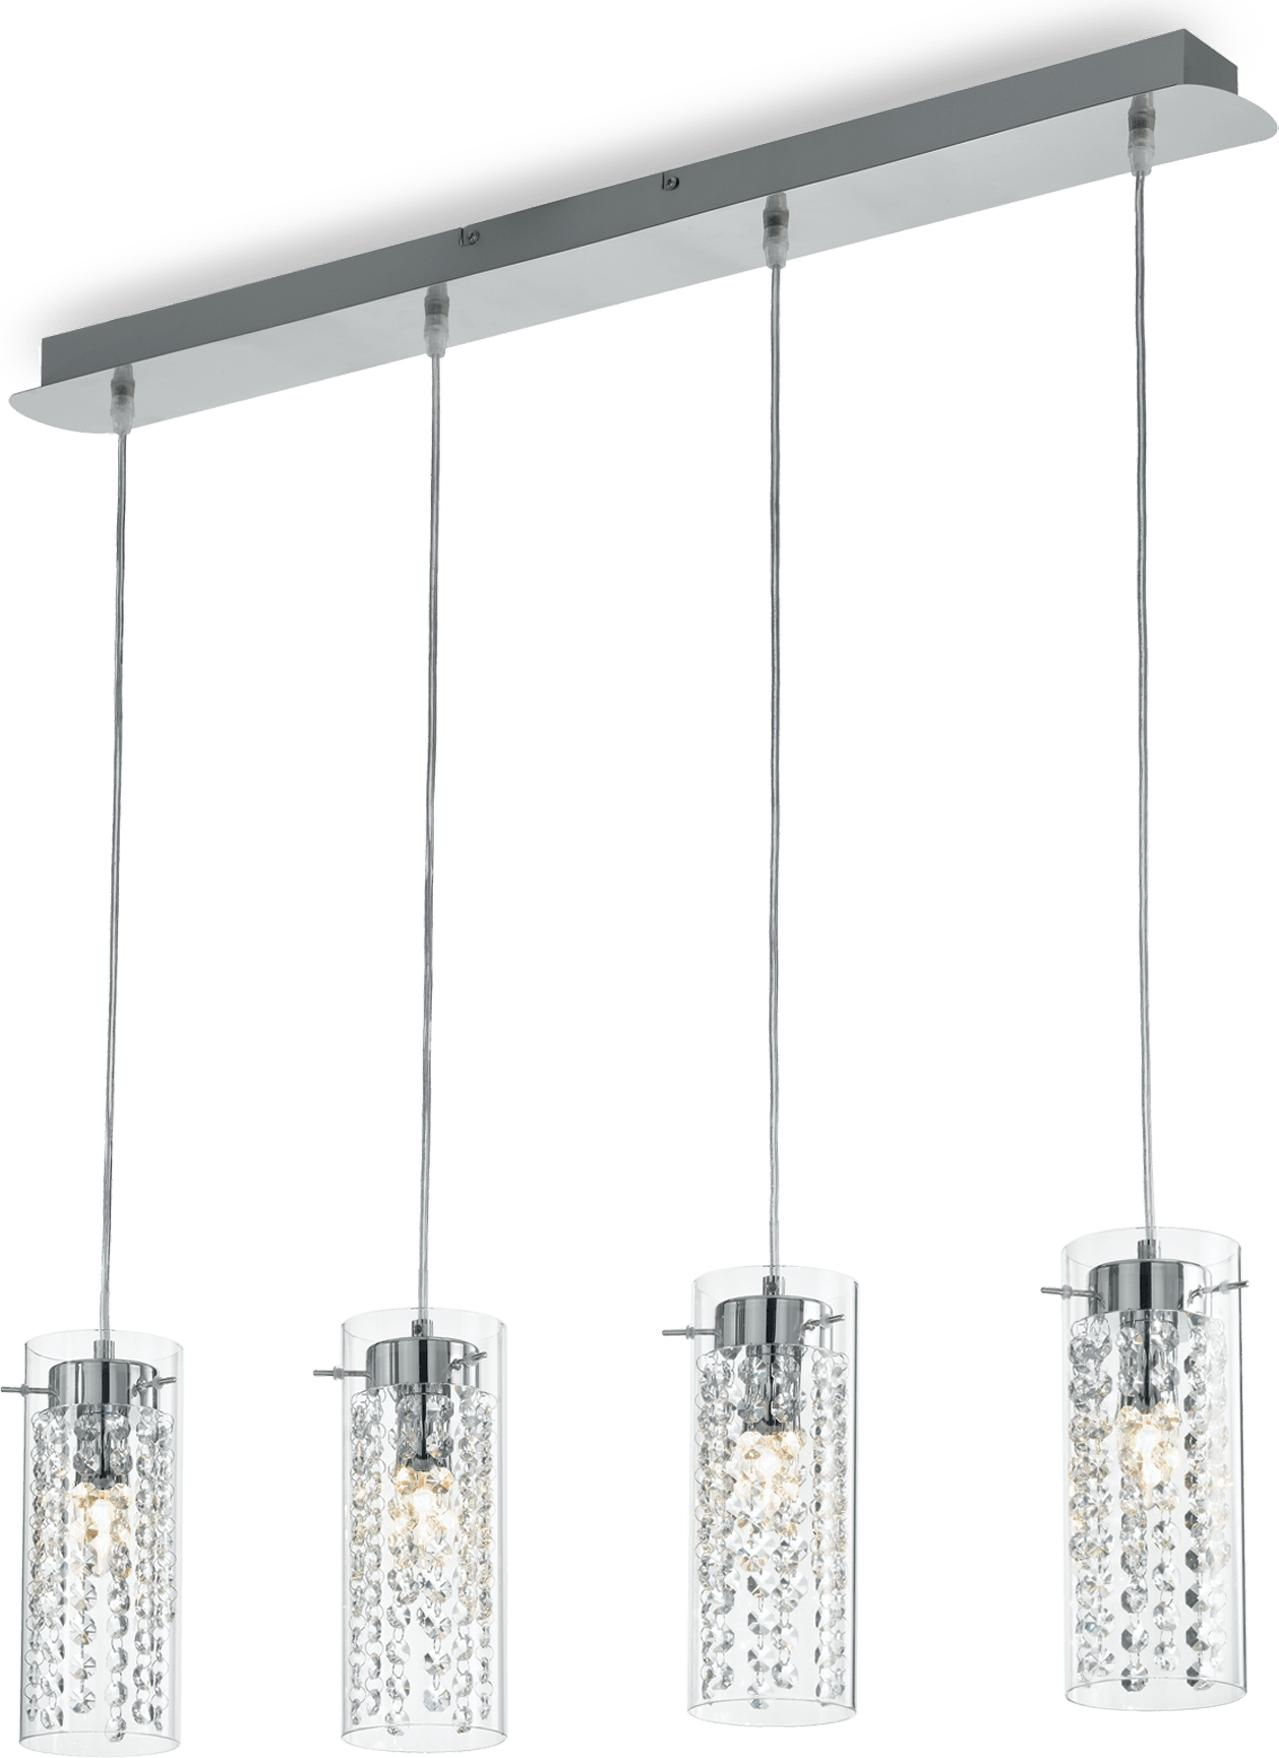 Ideal lux LED iguazu sp4 Pendelleuchten 4x5W 52373